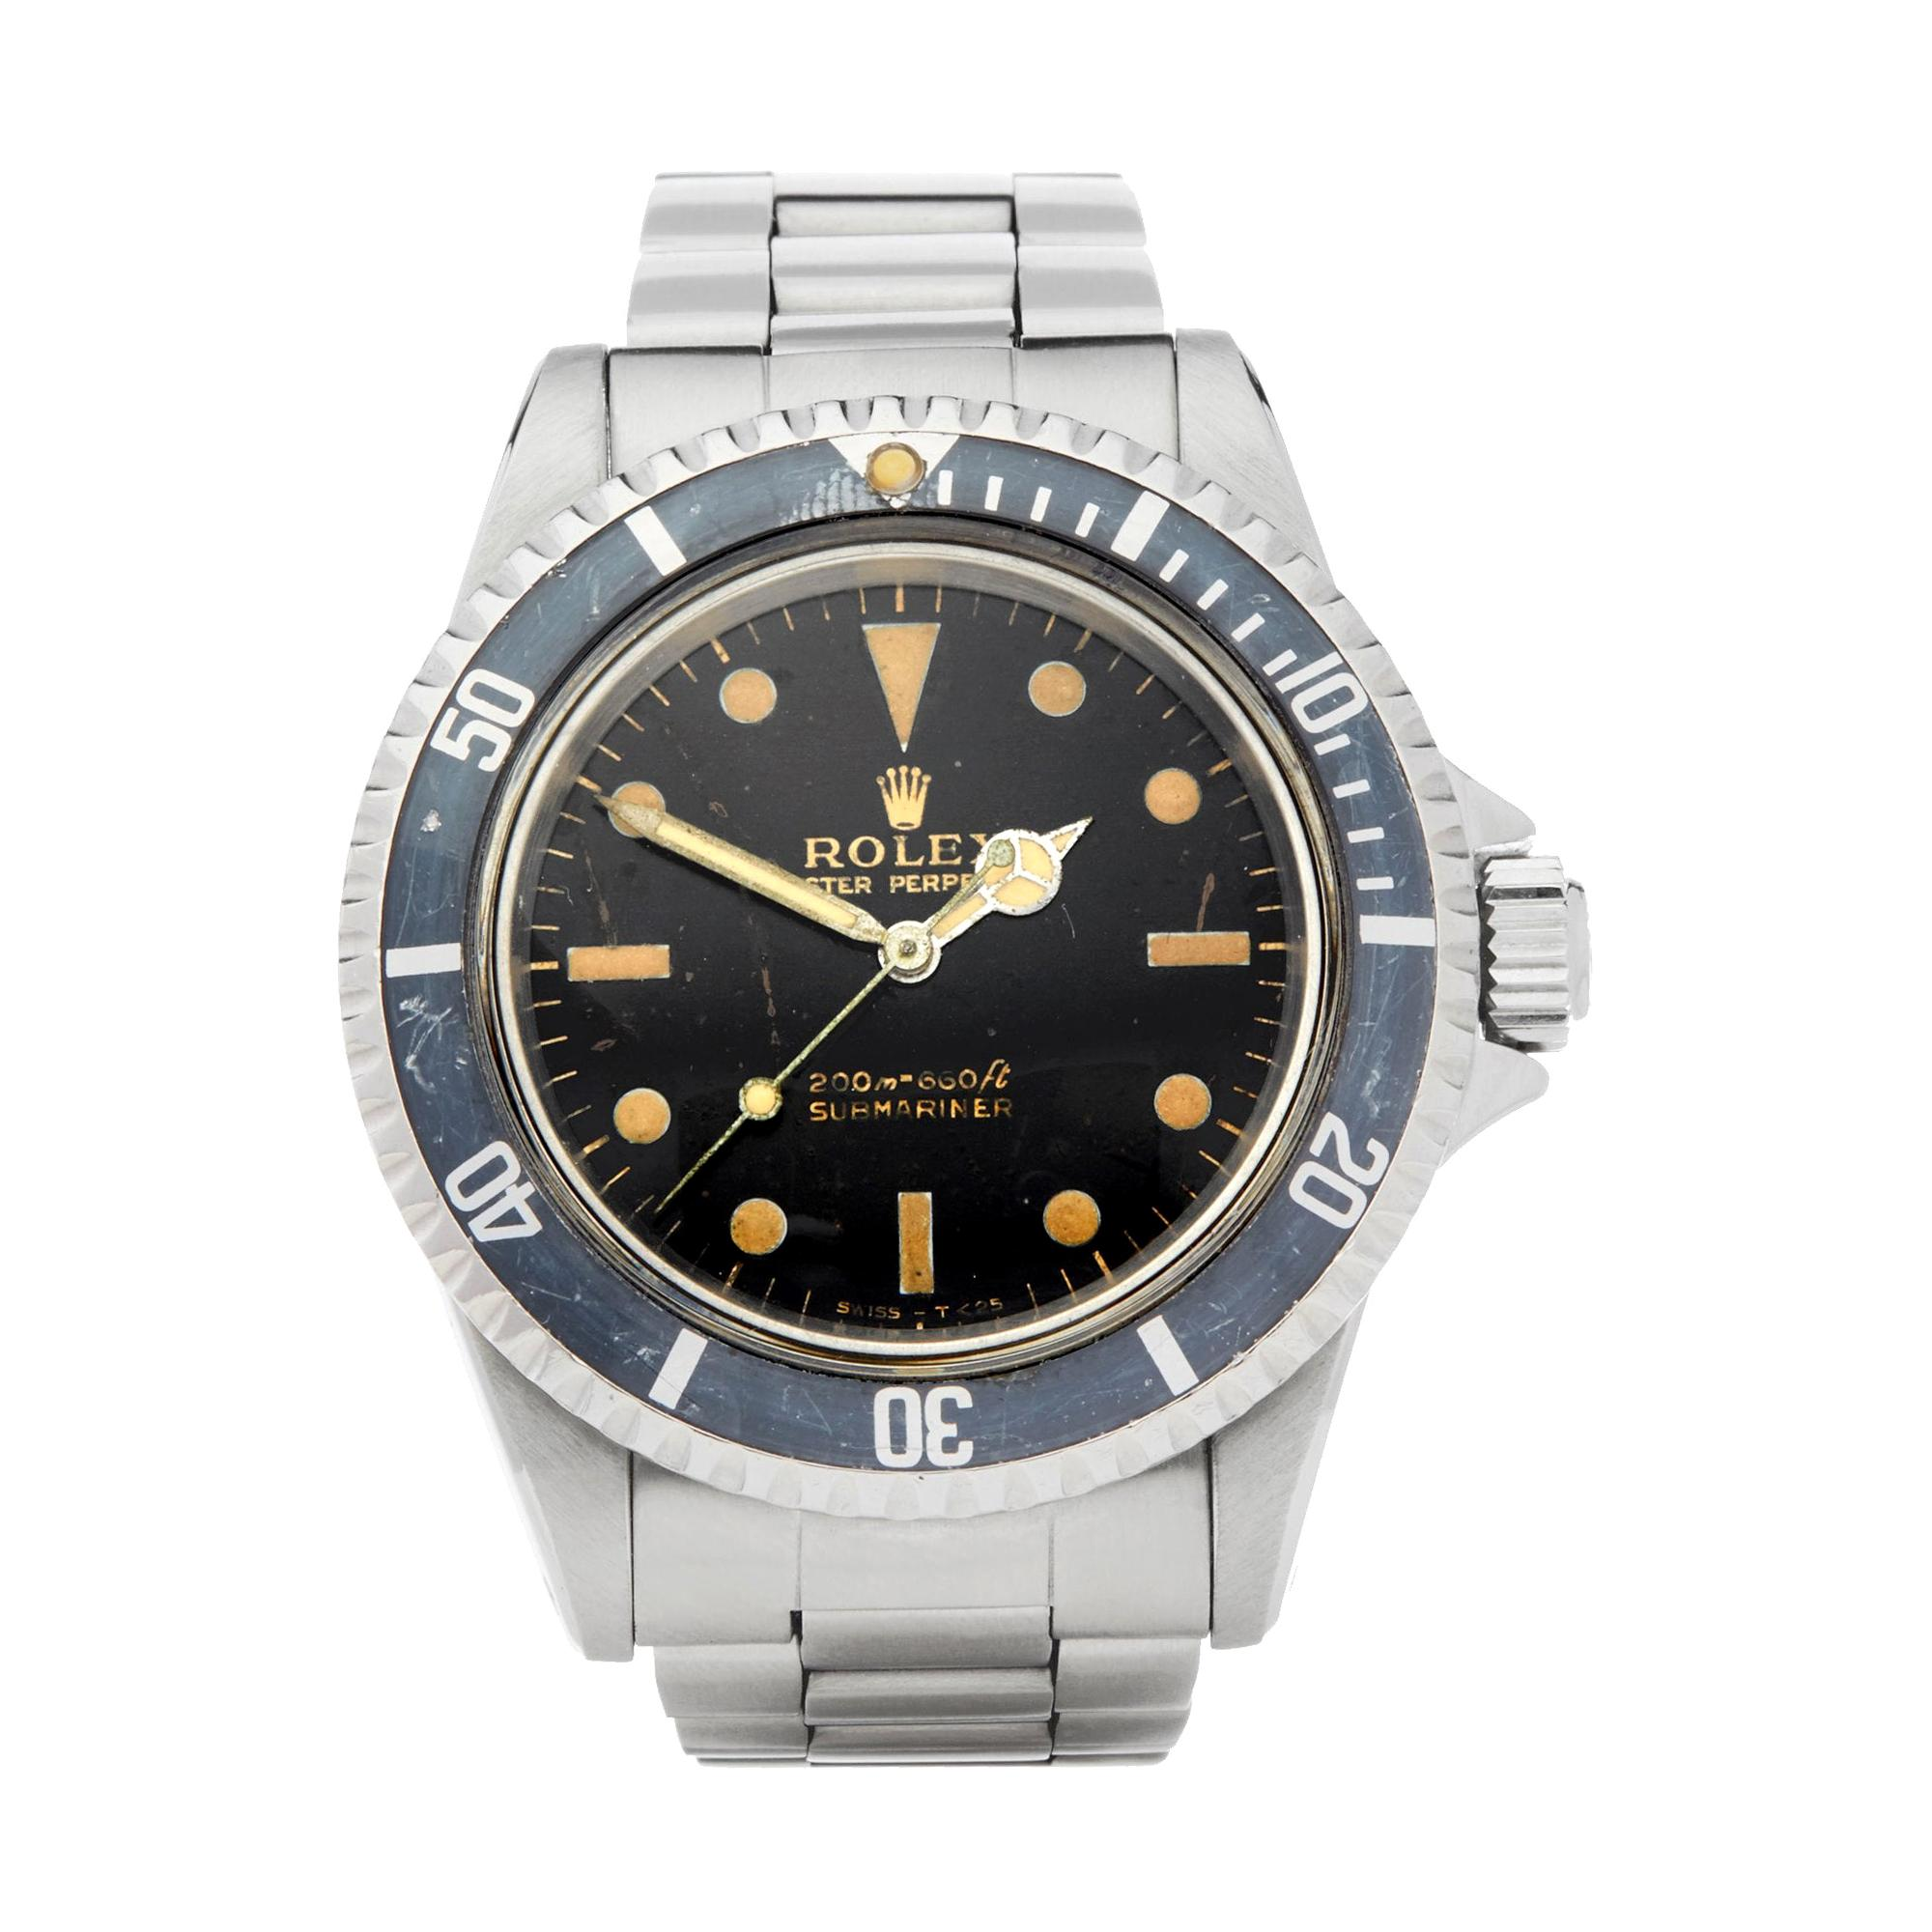 Rolex Submariner Non Date Gilt Gloss Meters First Stainless Steel 5513